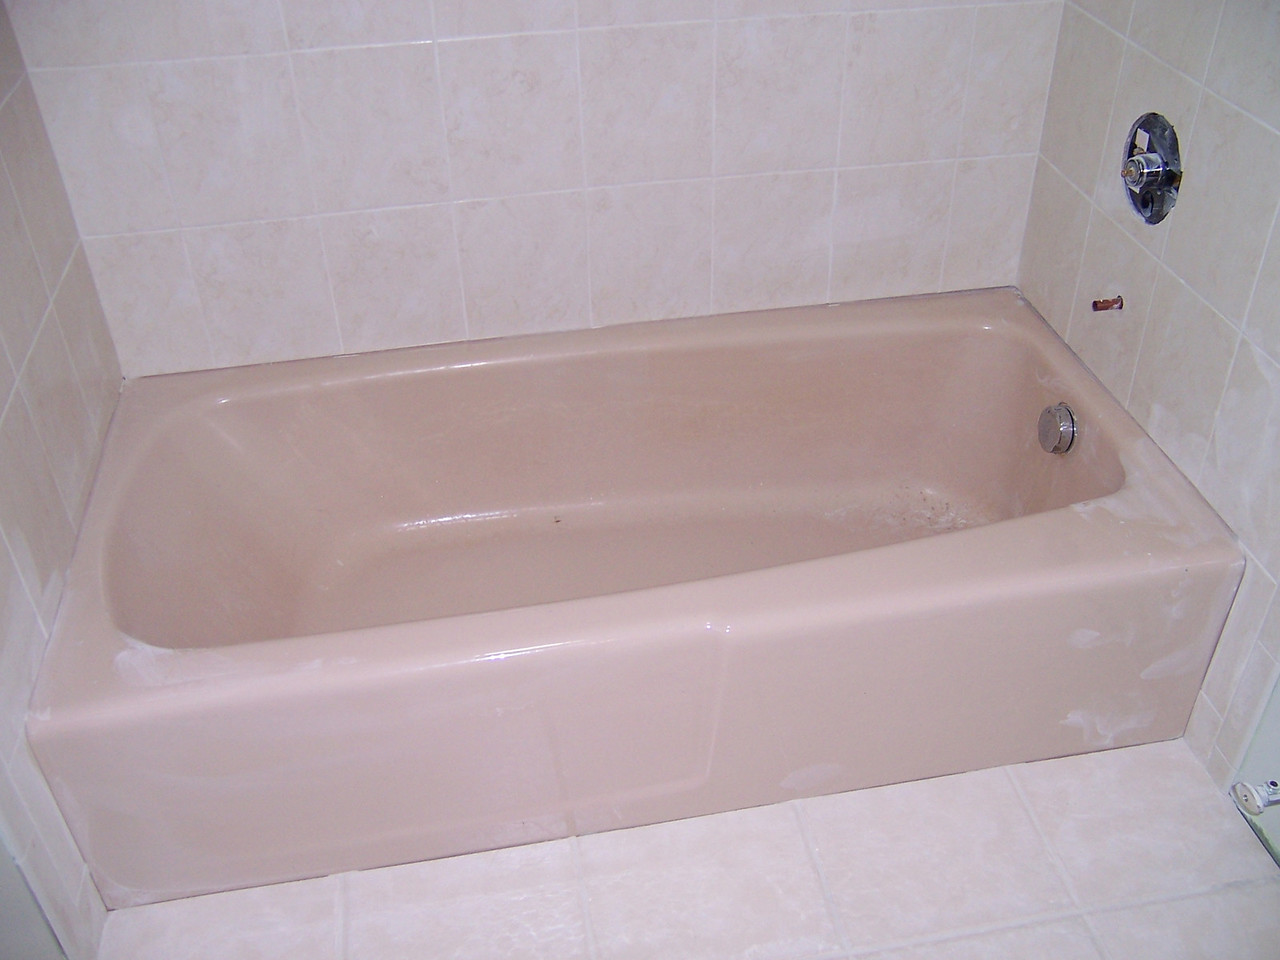 Have a tub that doesn't match the rest of your bathroom?